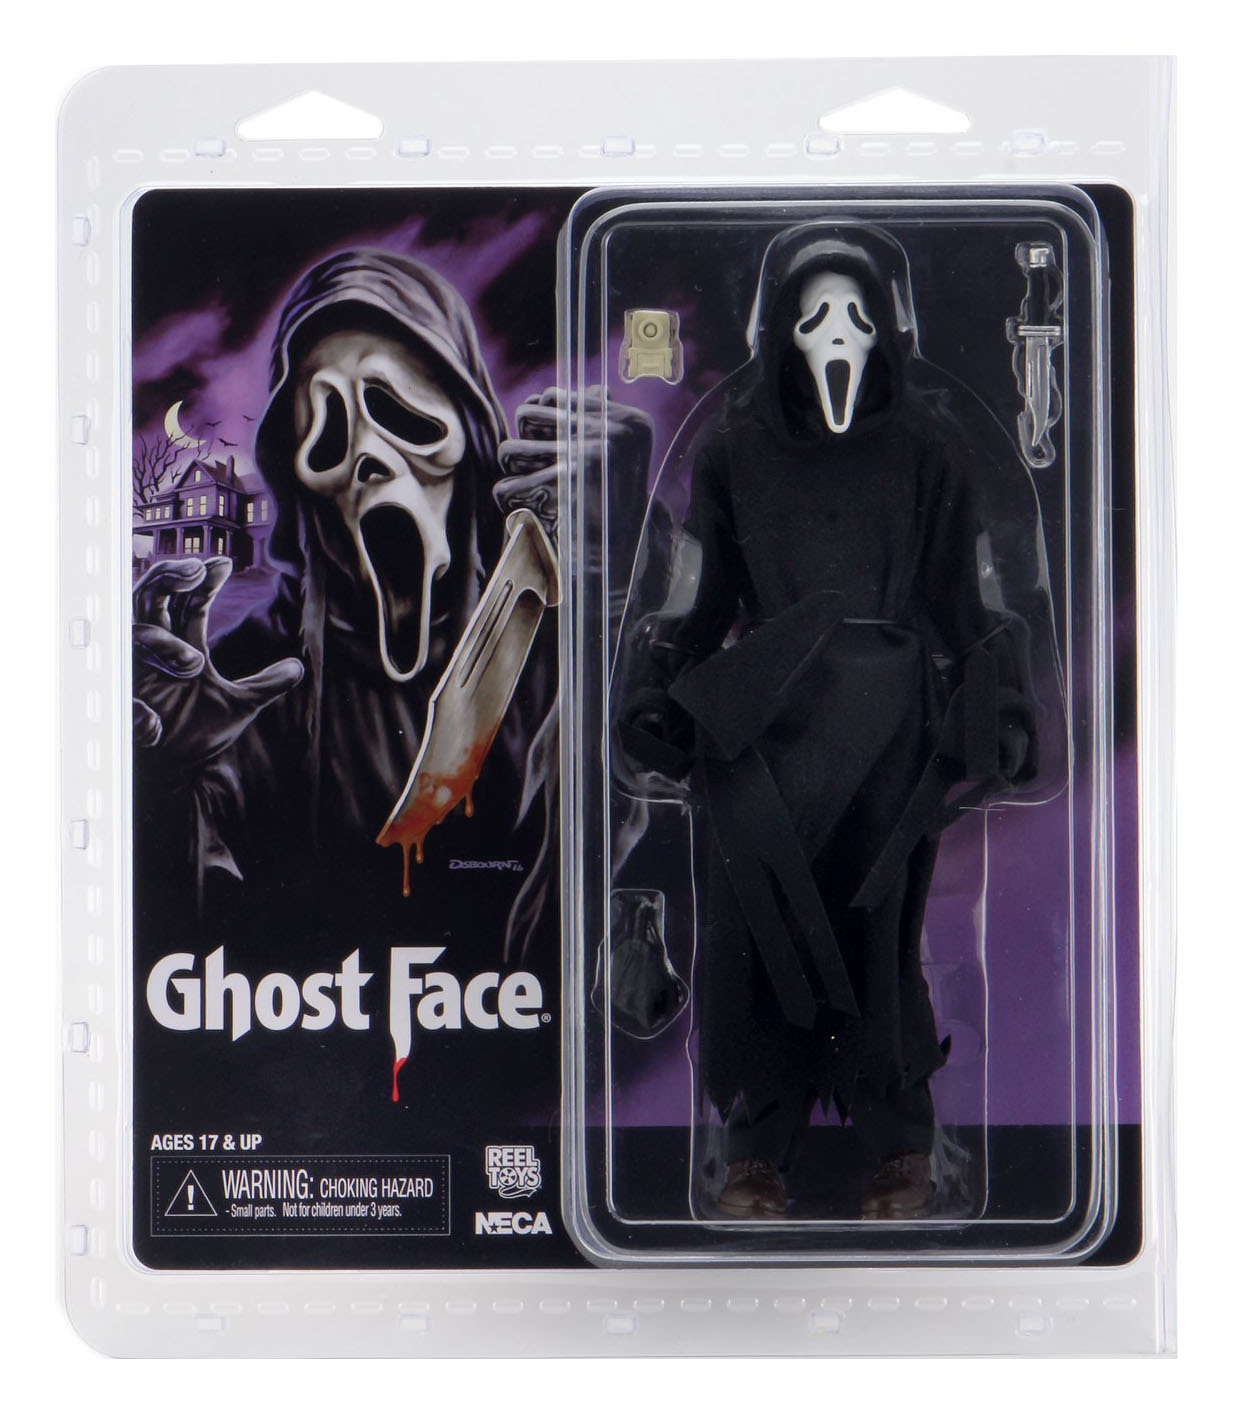 Ghostface 8 Inch Figure Packaging 001